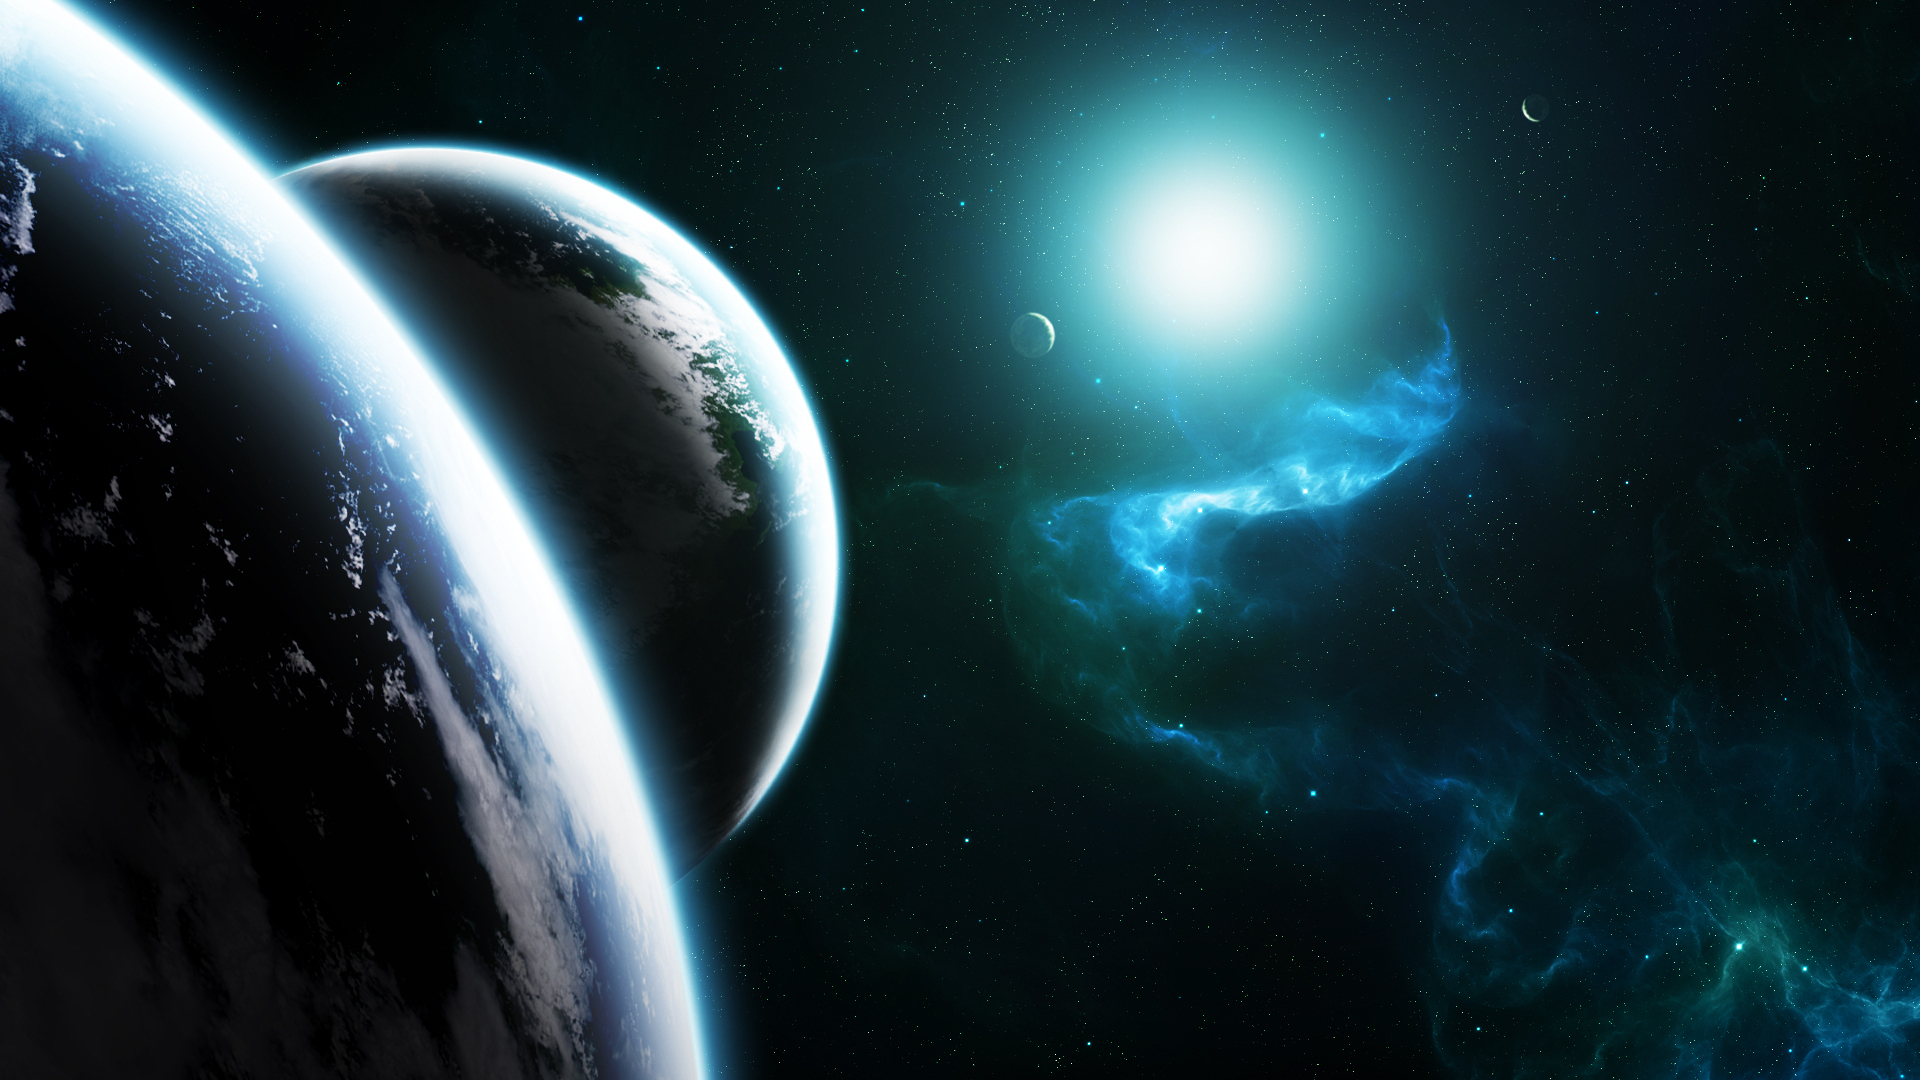 http-all-images-net-fantasy-science-fiction-hd-wallpaper-wp5806590